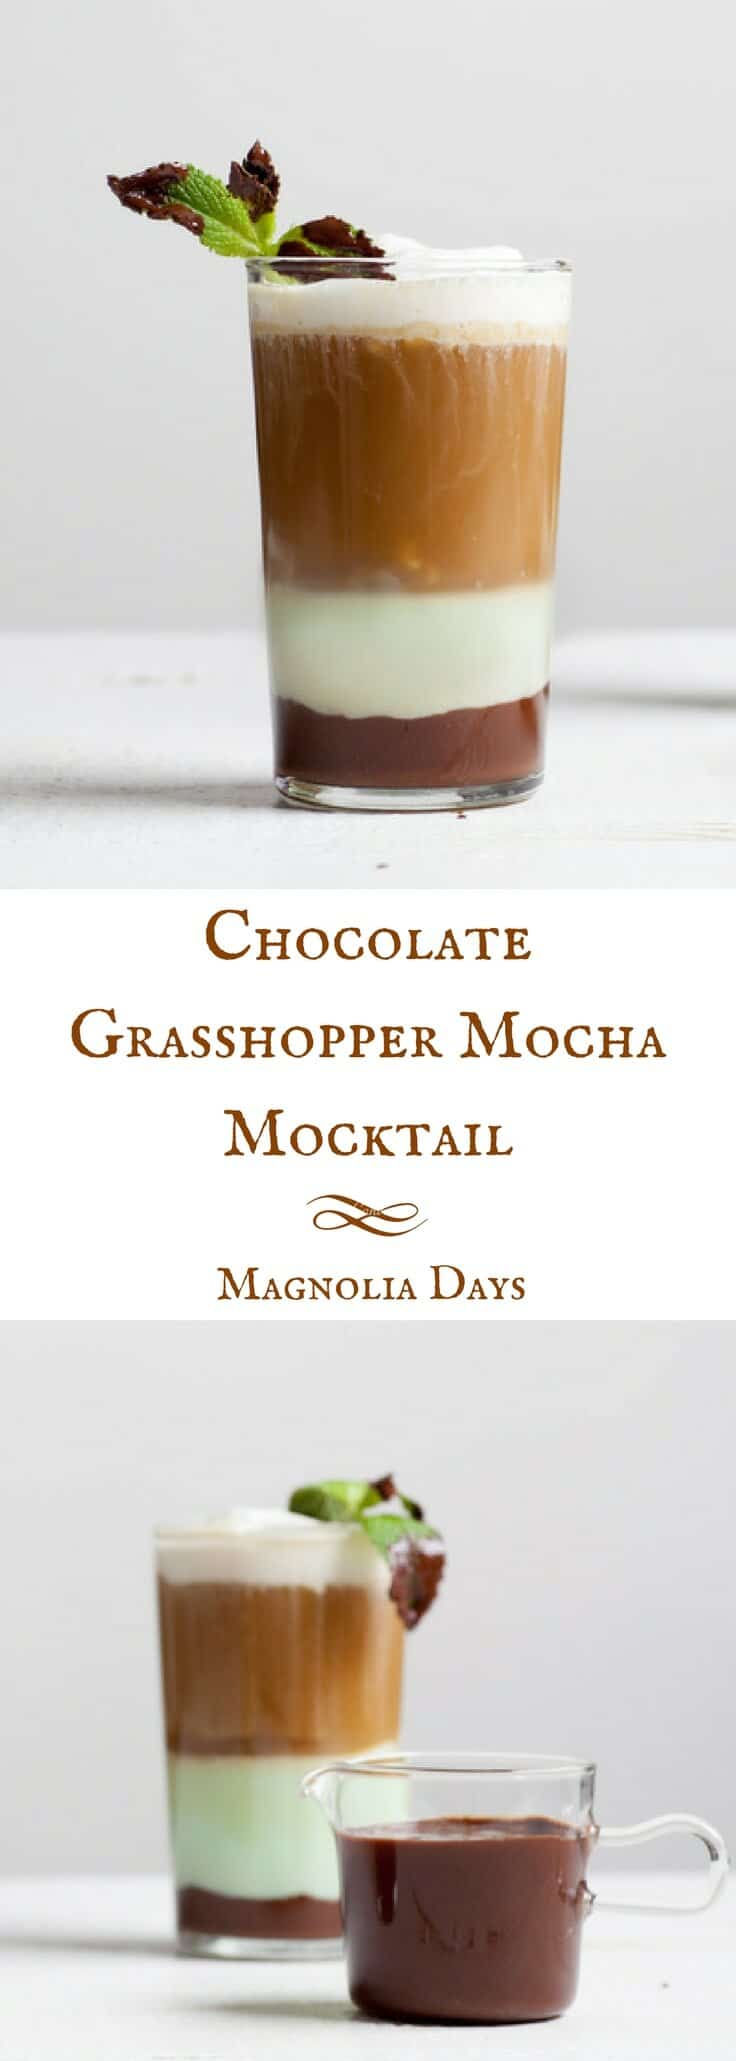 A chocolate and coffee flavored mocktail version of the classic grasshopper cocktail drink, which originated in the French Quarter of New Orleans, Louisiana.